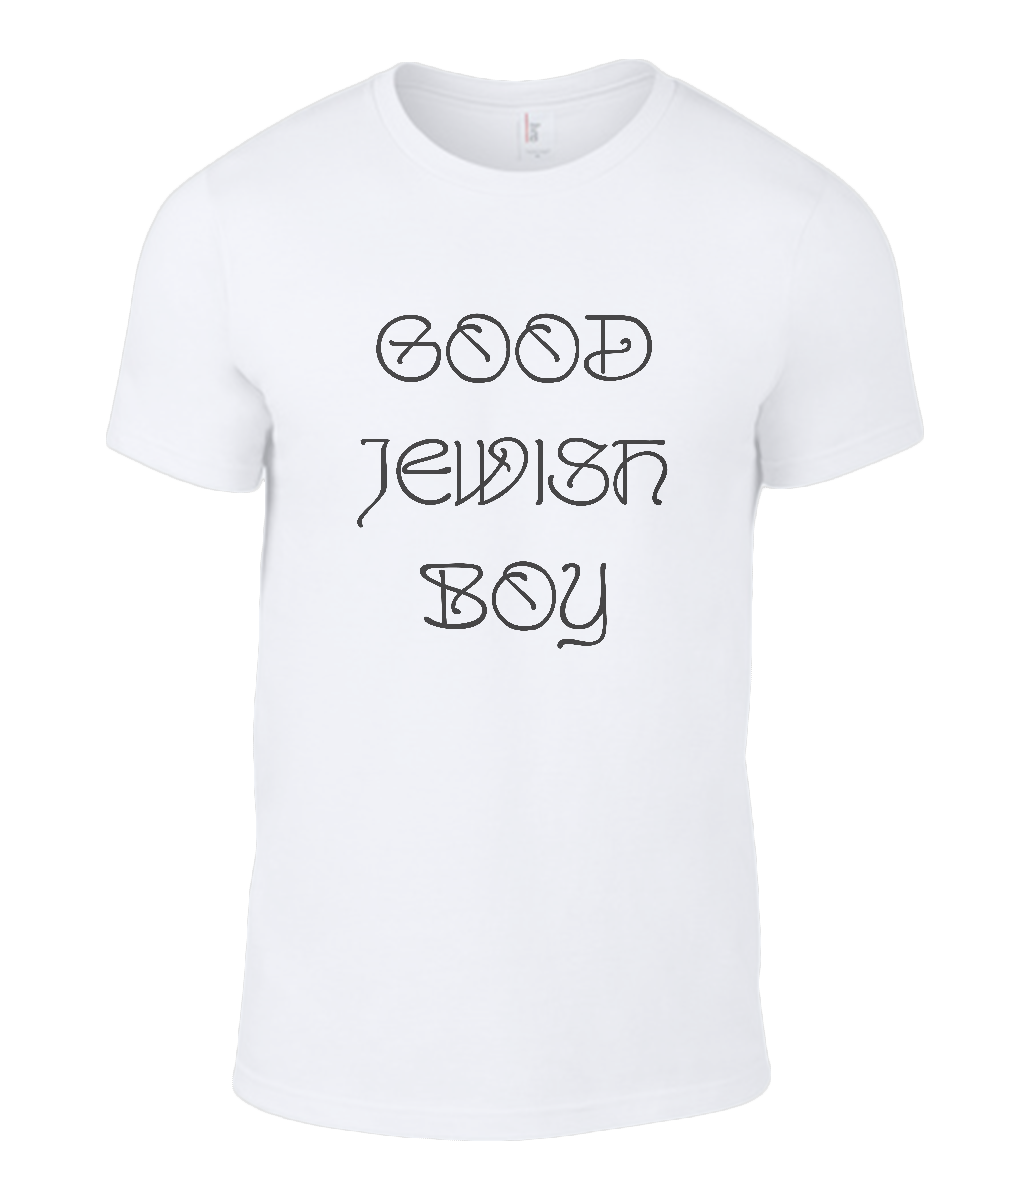 Round Neck T-Shirt - Good Jewish Boy - Lokshen Pudding UK - White